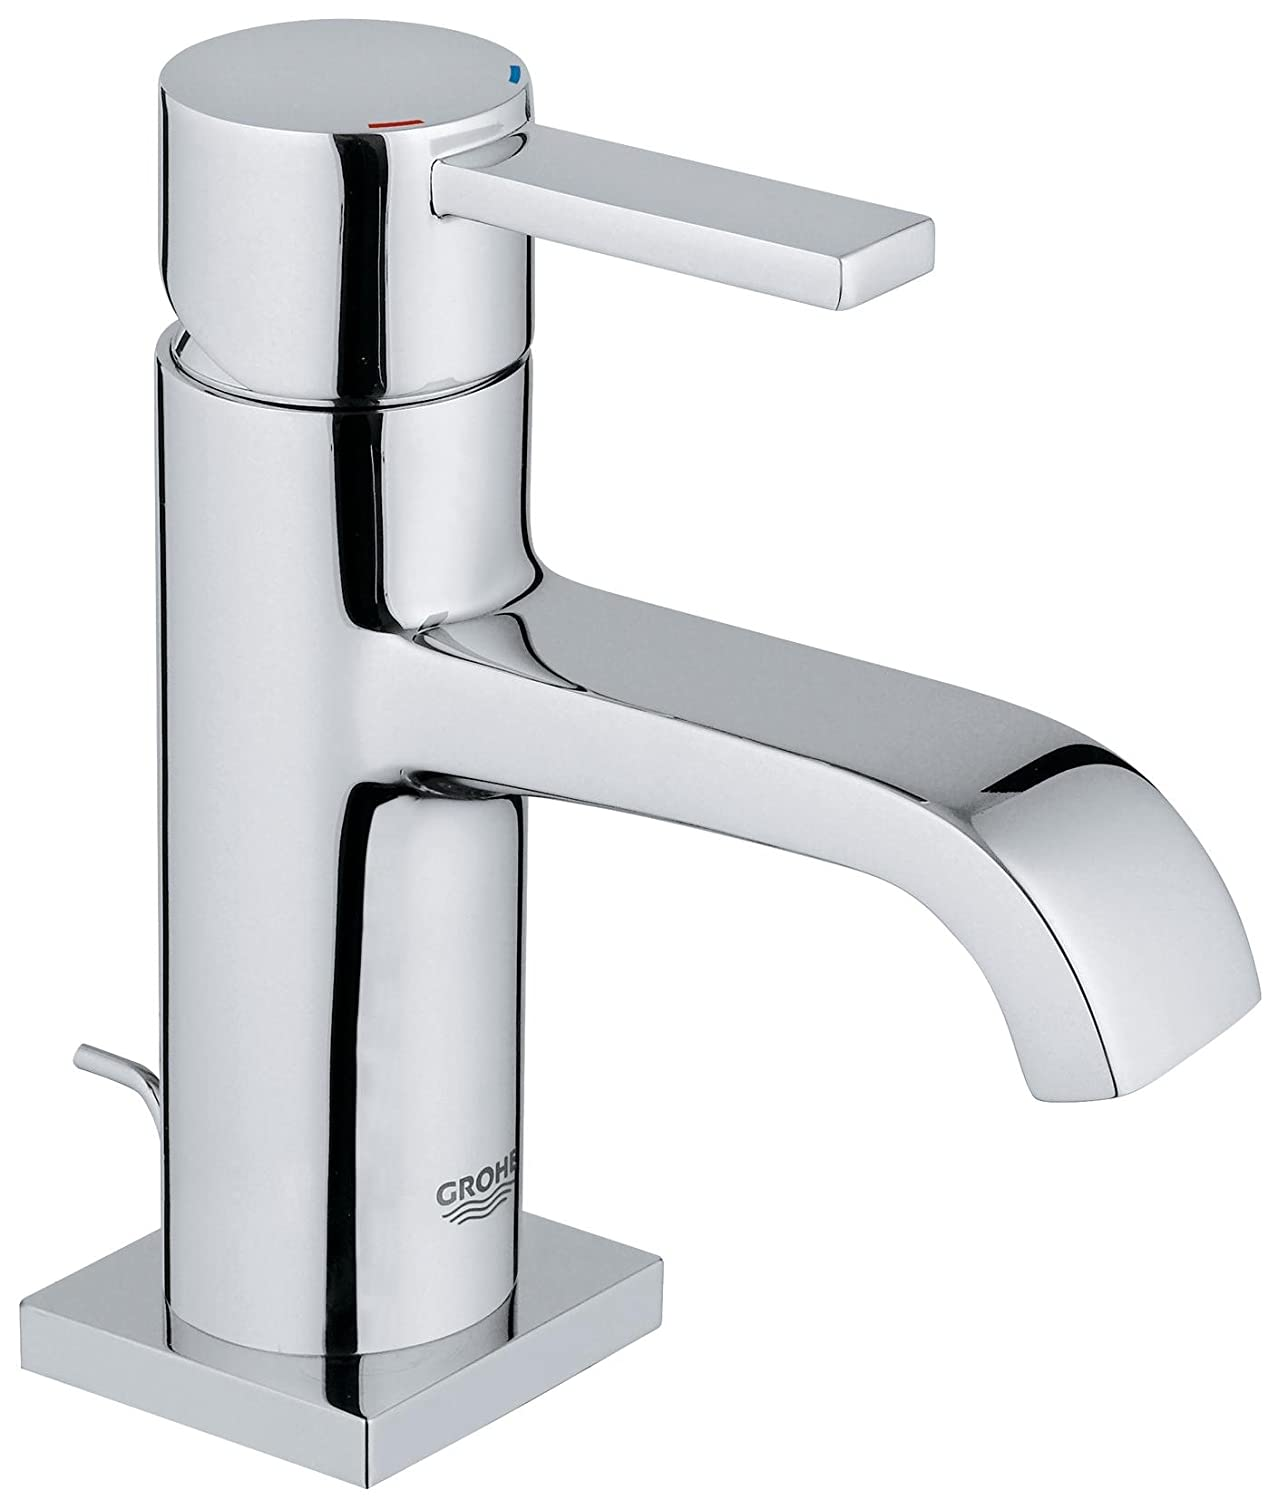 GROHE one hand-basin-mixer Allure 32757 DN15 28mm cartridge EcoJoy ...